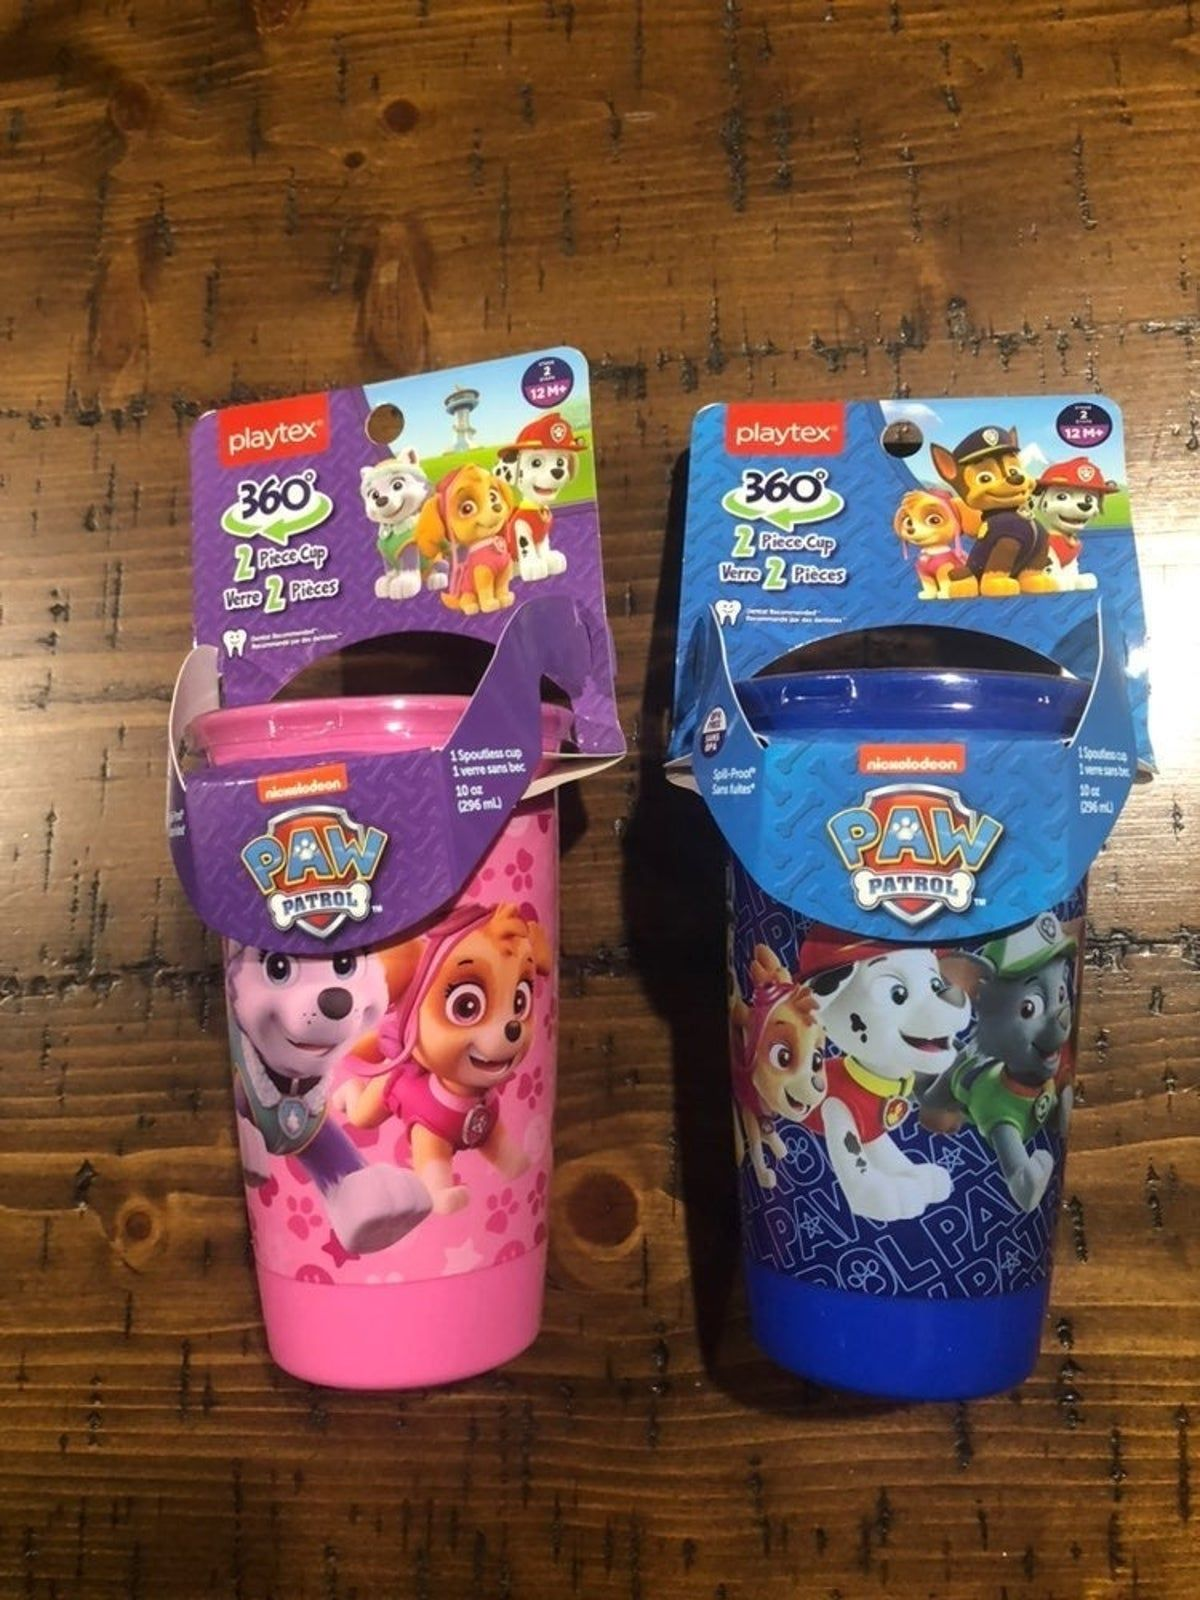 Playtex Sippy Cup Paw Patrol Easter Gi Playtex Sippy Cups New Baby Products Playtex